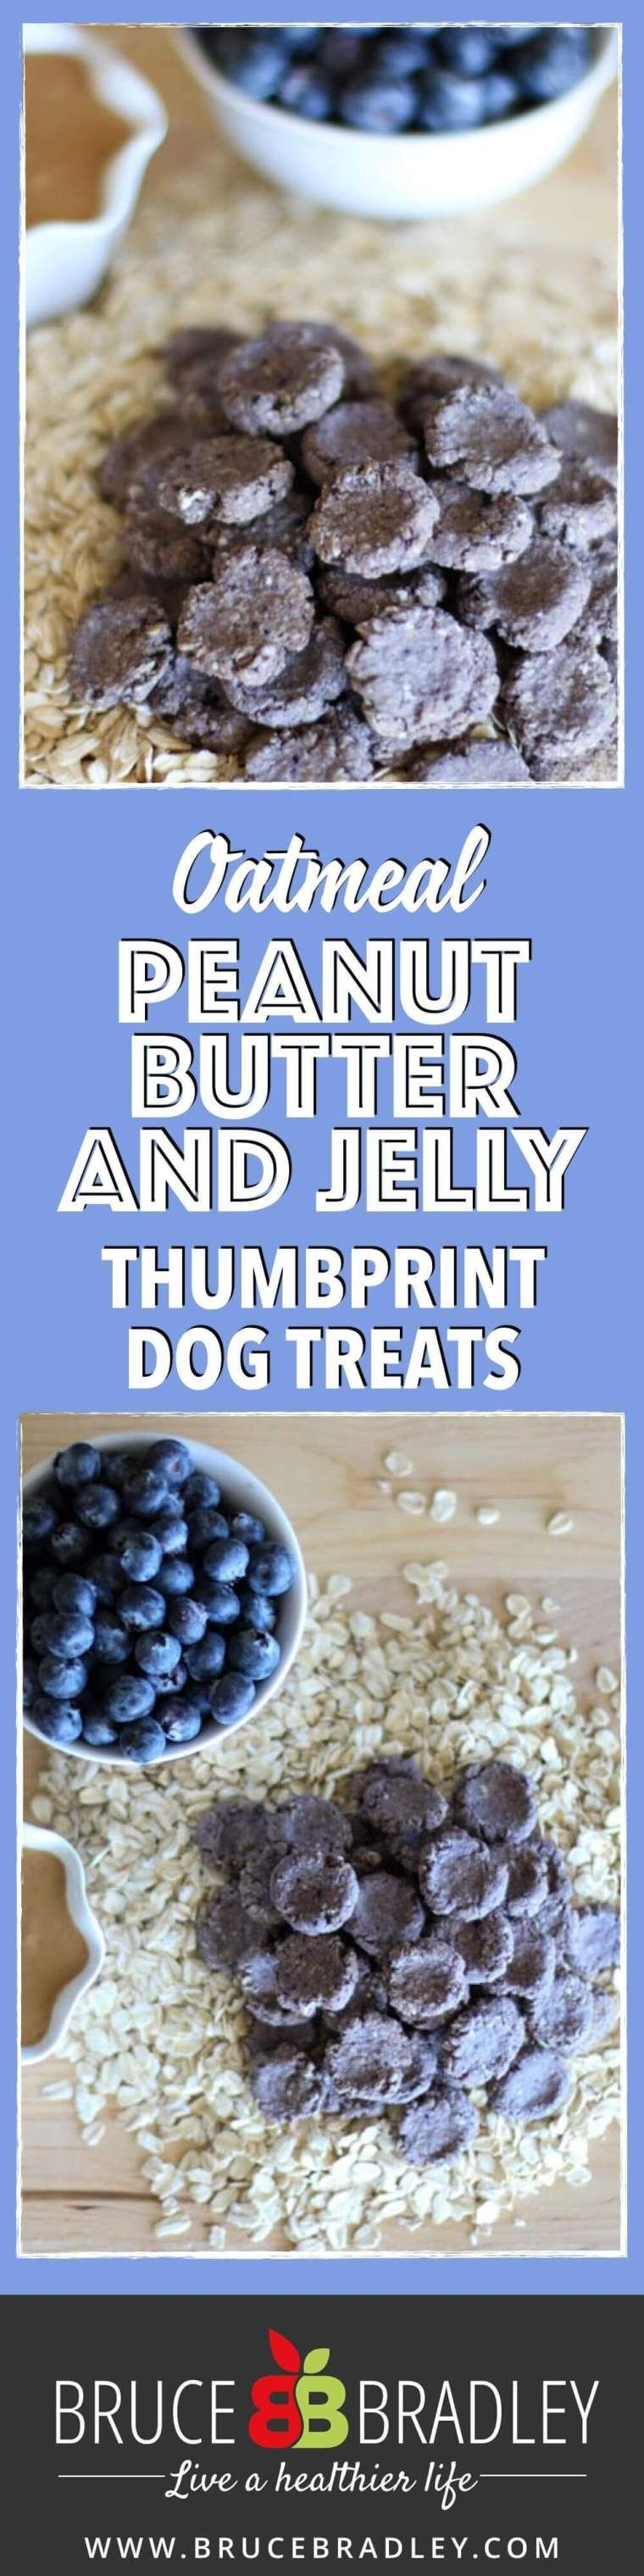 Homemade Peanut Butter Dog Treats with Blueberries ...